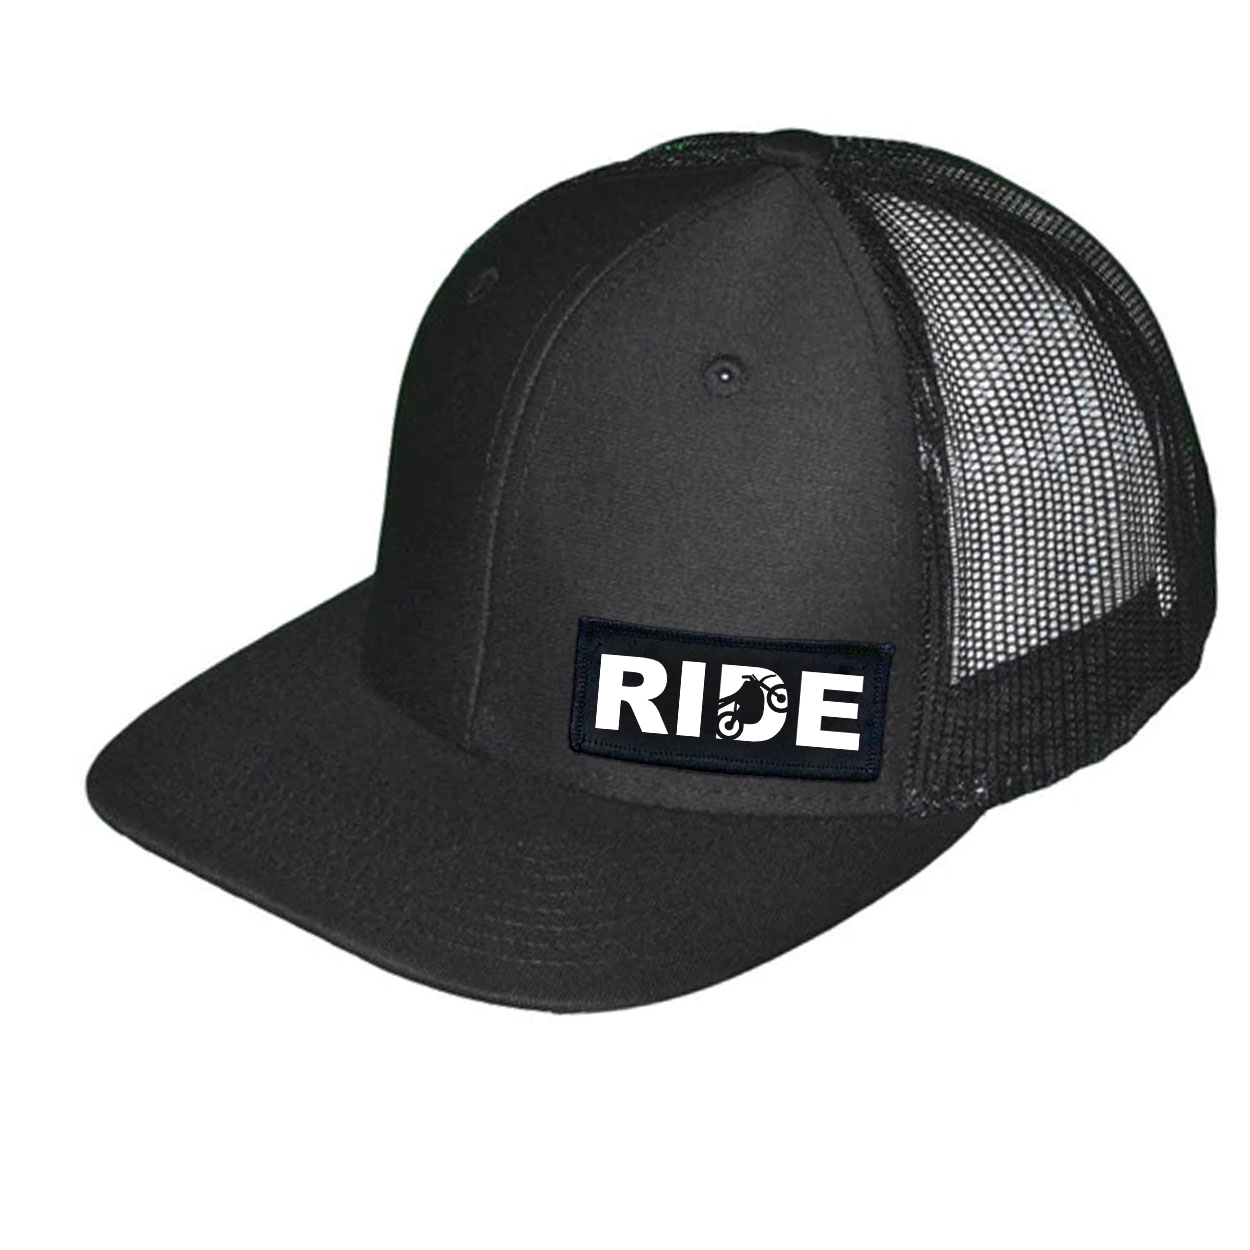 Ride Moto Logo Night Out Woven Patch Snapback Trucker Hat Black (White Logo)